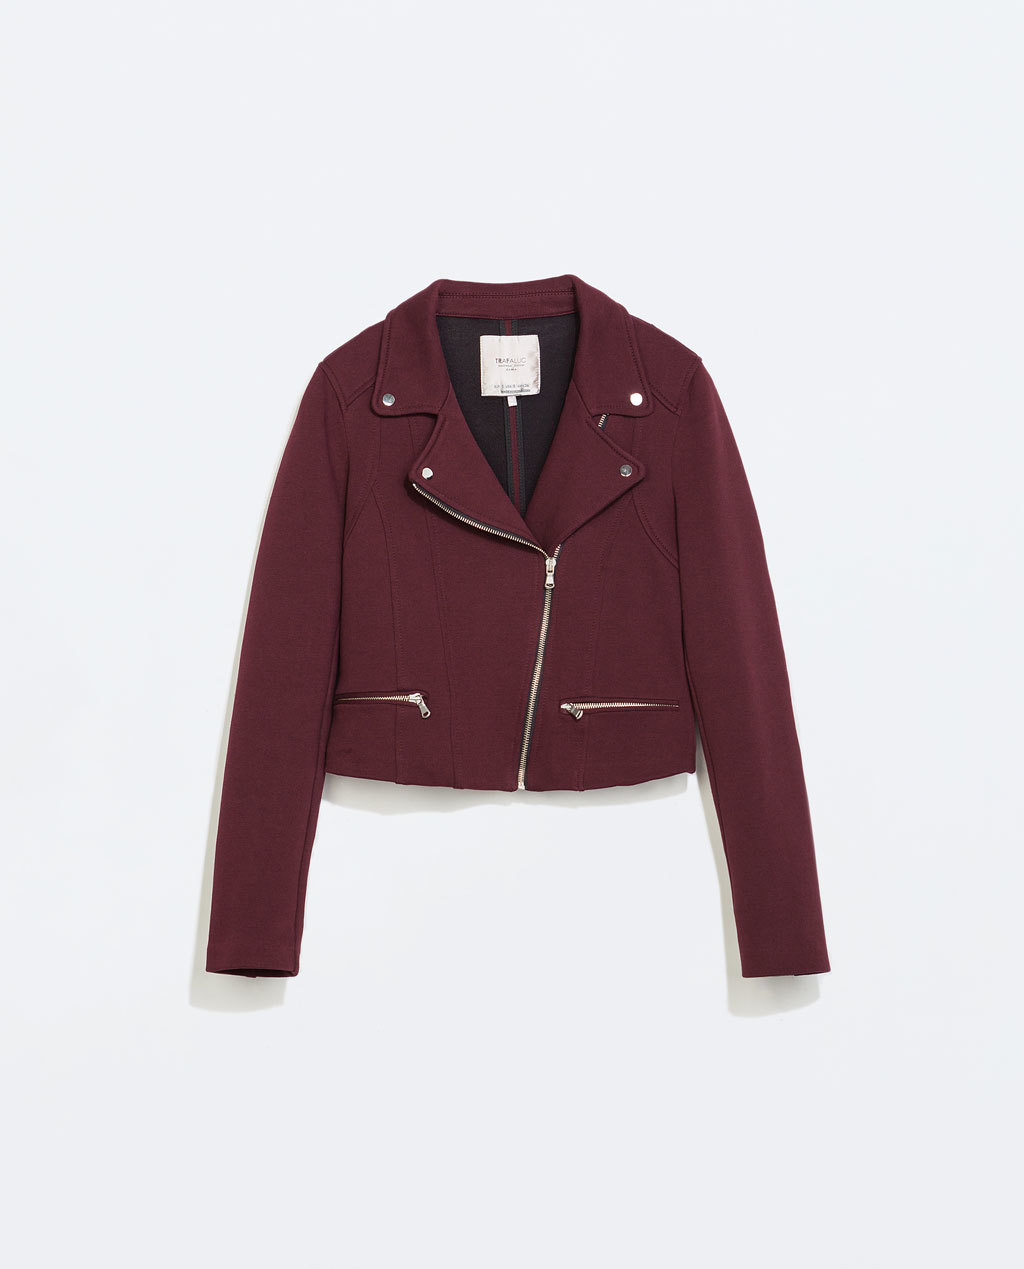 Plush Biker Jacket - pattern: plain; style: biker; collar: asymmetric biker; predominant colour: burgundy; occasions: casual, evening, creative work; fit: tailored/fitted; fibres: cotton - 100%; sleeve length: long sleeve; sleeve style: standard; collar break: medium; pattern type: fabric; texture group: woven light midweight; season: a/w 2014; length: cropped